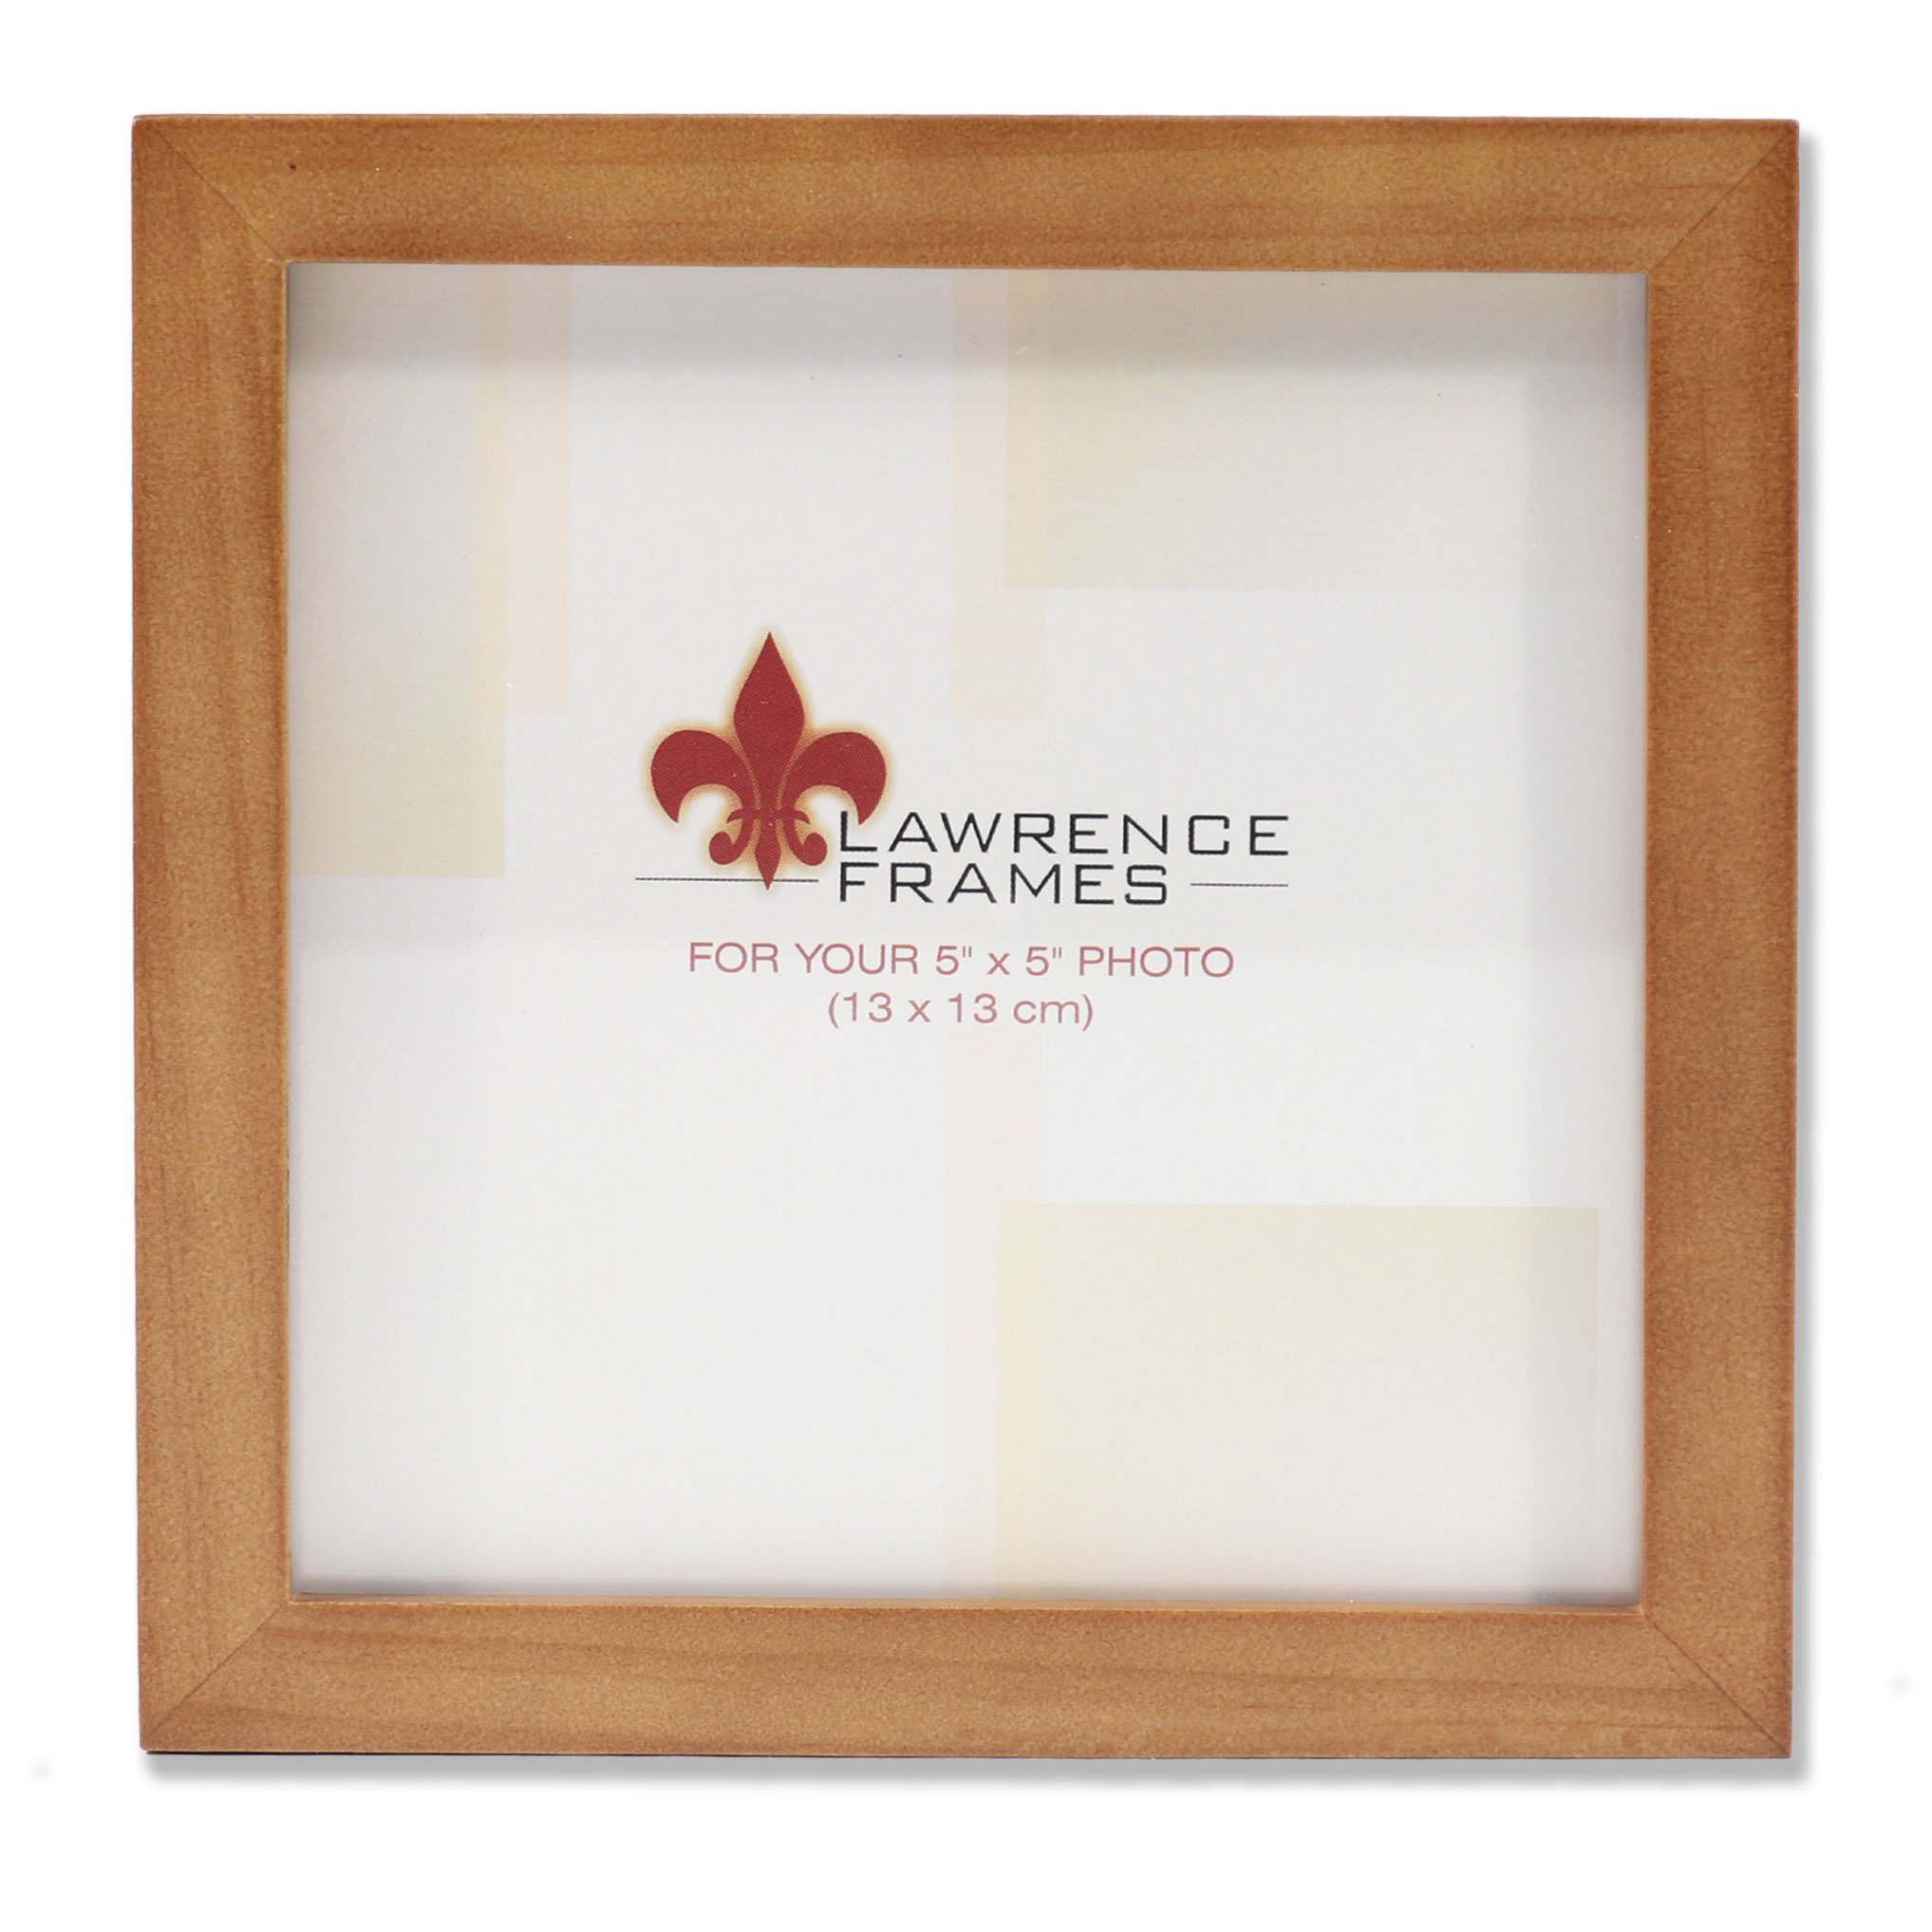 Lawrence Frames 766055 Nutmeg Wood Picture Frame, 5 by 5-Inch by Lawrence Frames